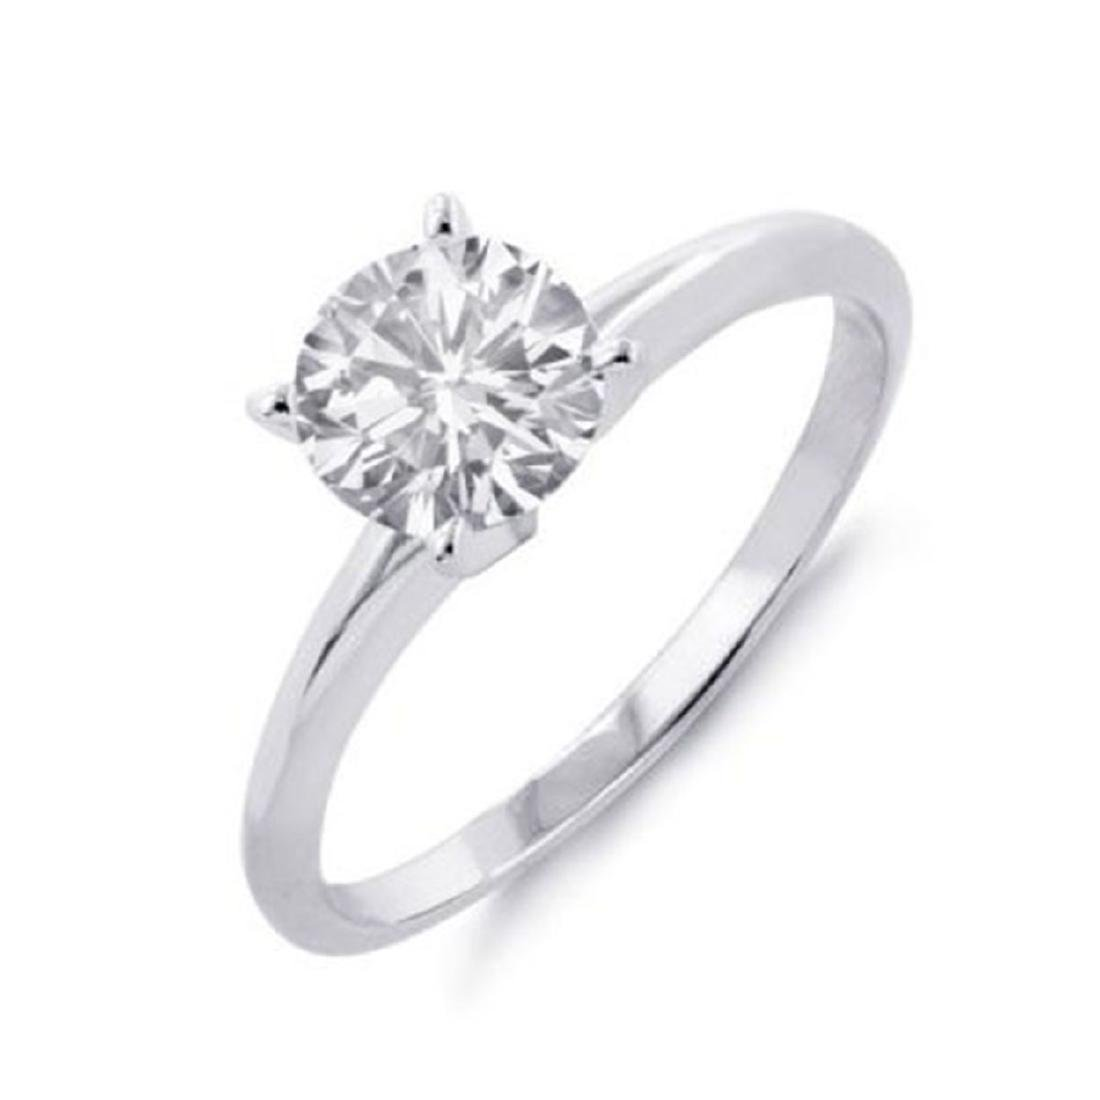 0.60 ctw VS/SI Diamond Solitaire Ring 18K White Gold -